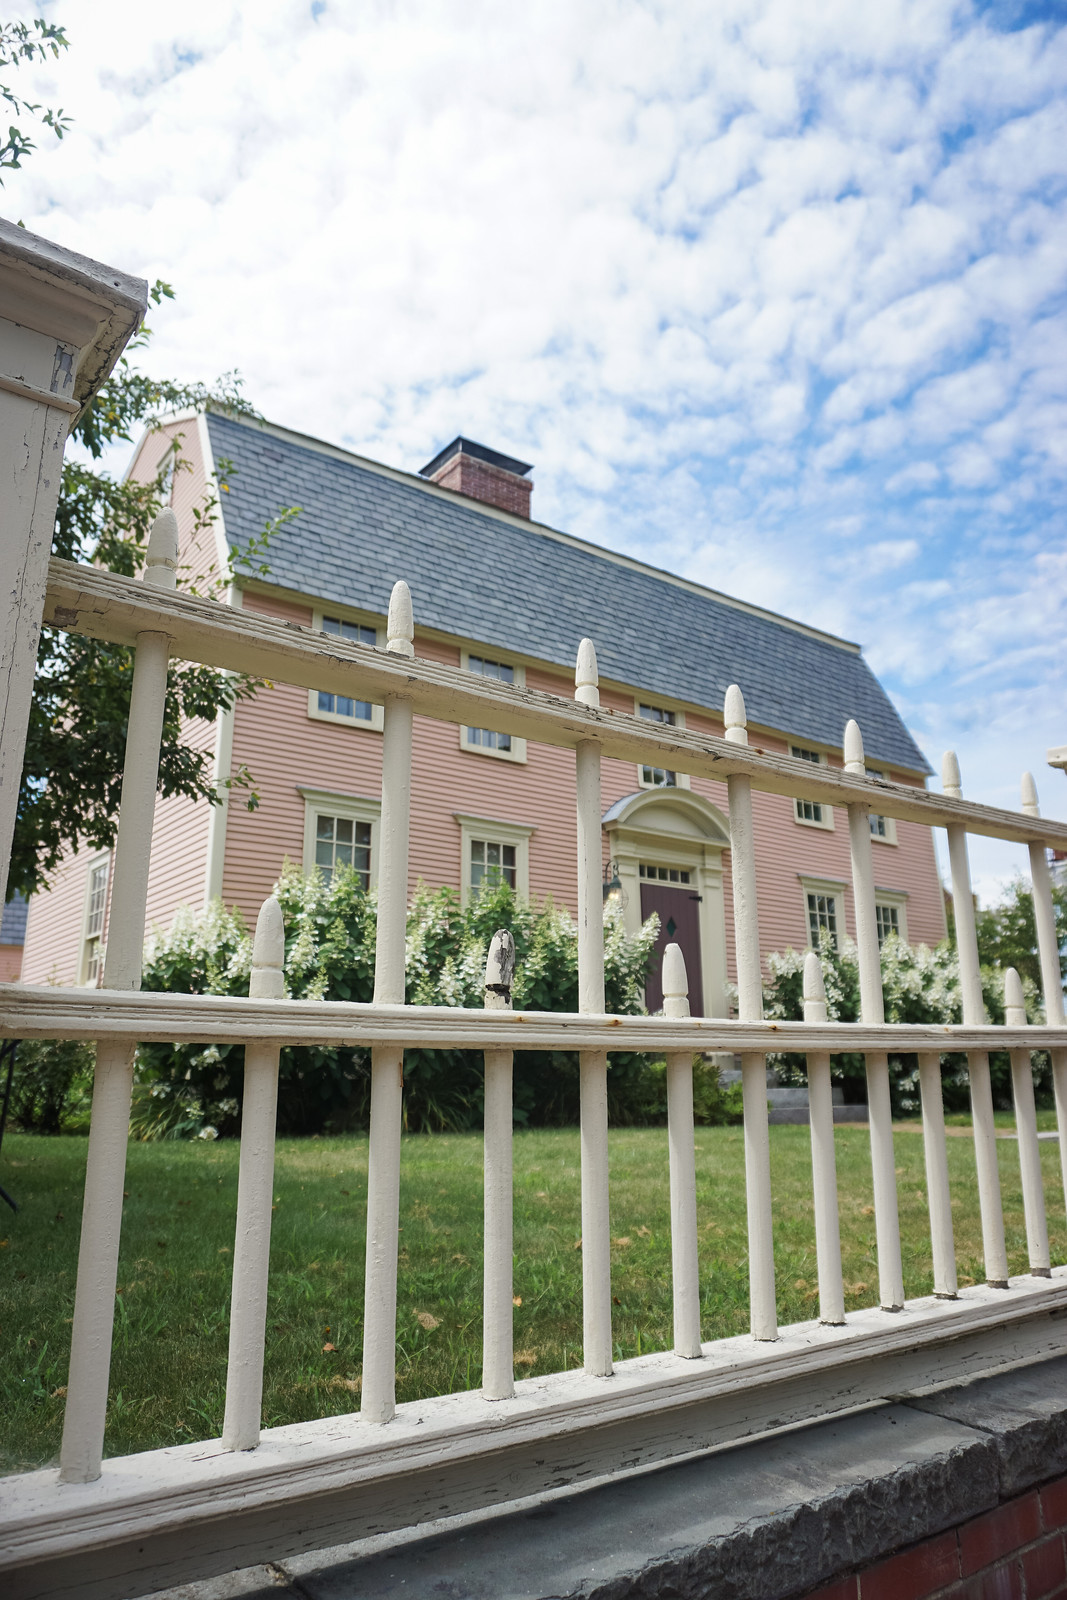 Historical Houses of Portsmouth | Portsmouth New Hampshire Travel Guide | Weekend in New England | Things to see in Portsmouth | What to do in New Hampshire